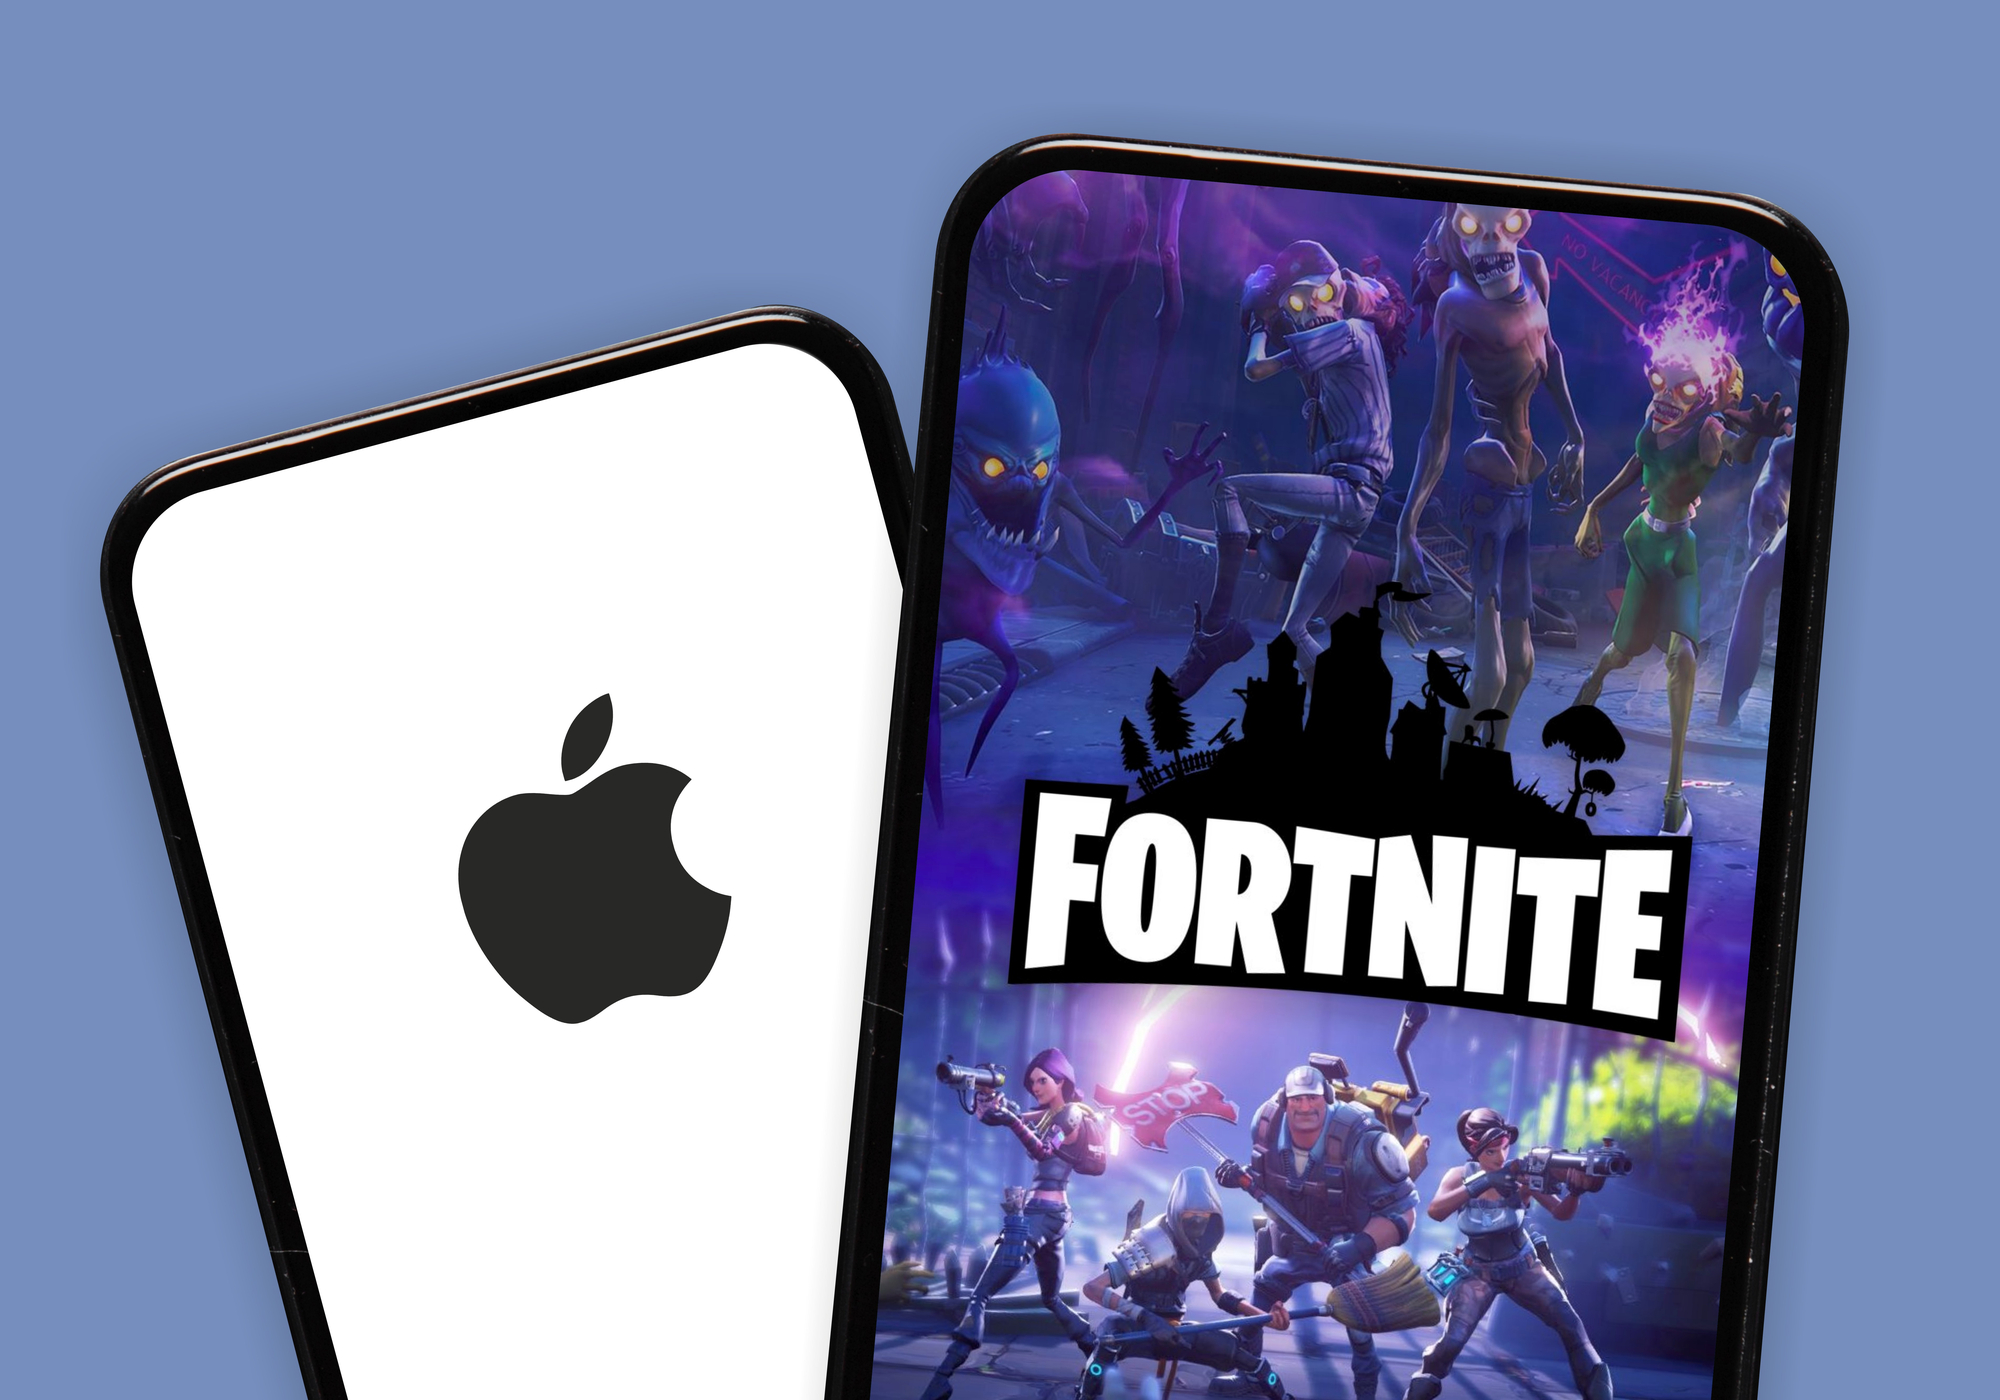 Tech Report Weekly: Uber judgement day, Fornite-Apple face off, Palantir goes public